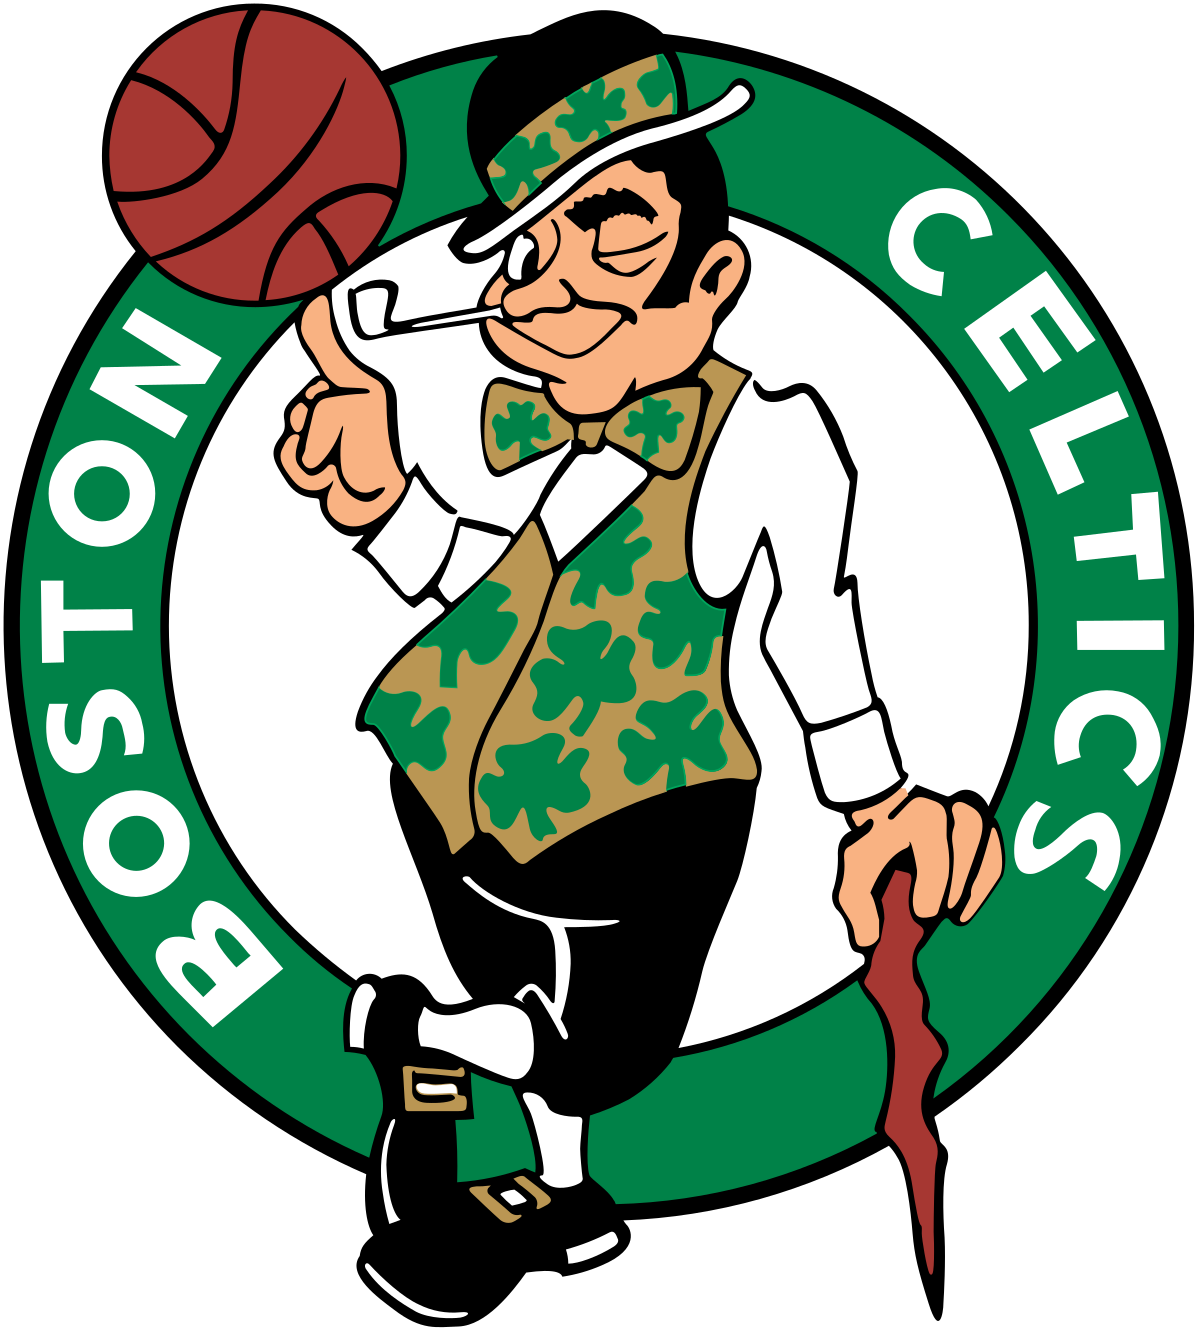 Basketball team with coaches clipart svg transparent download Boston Celtics - Wikipedia svg transparent download